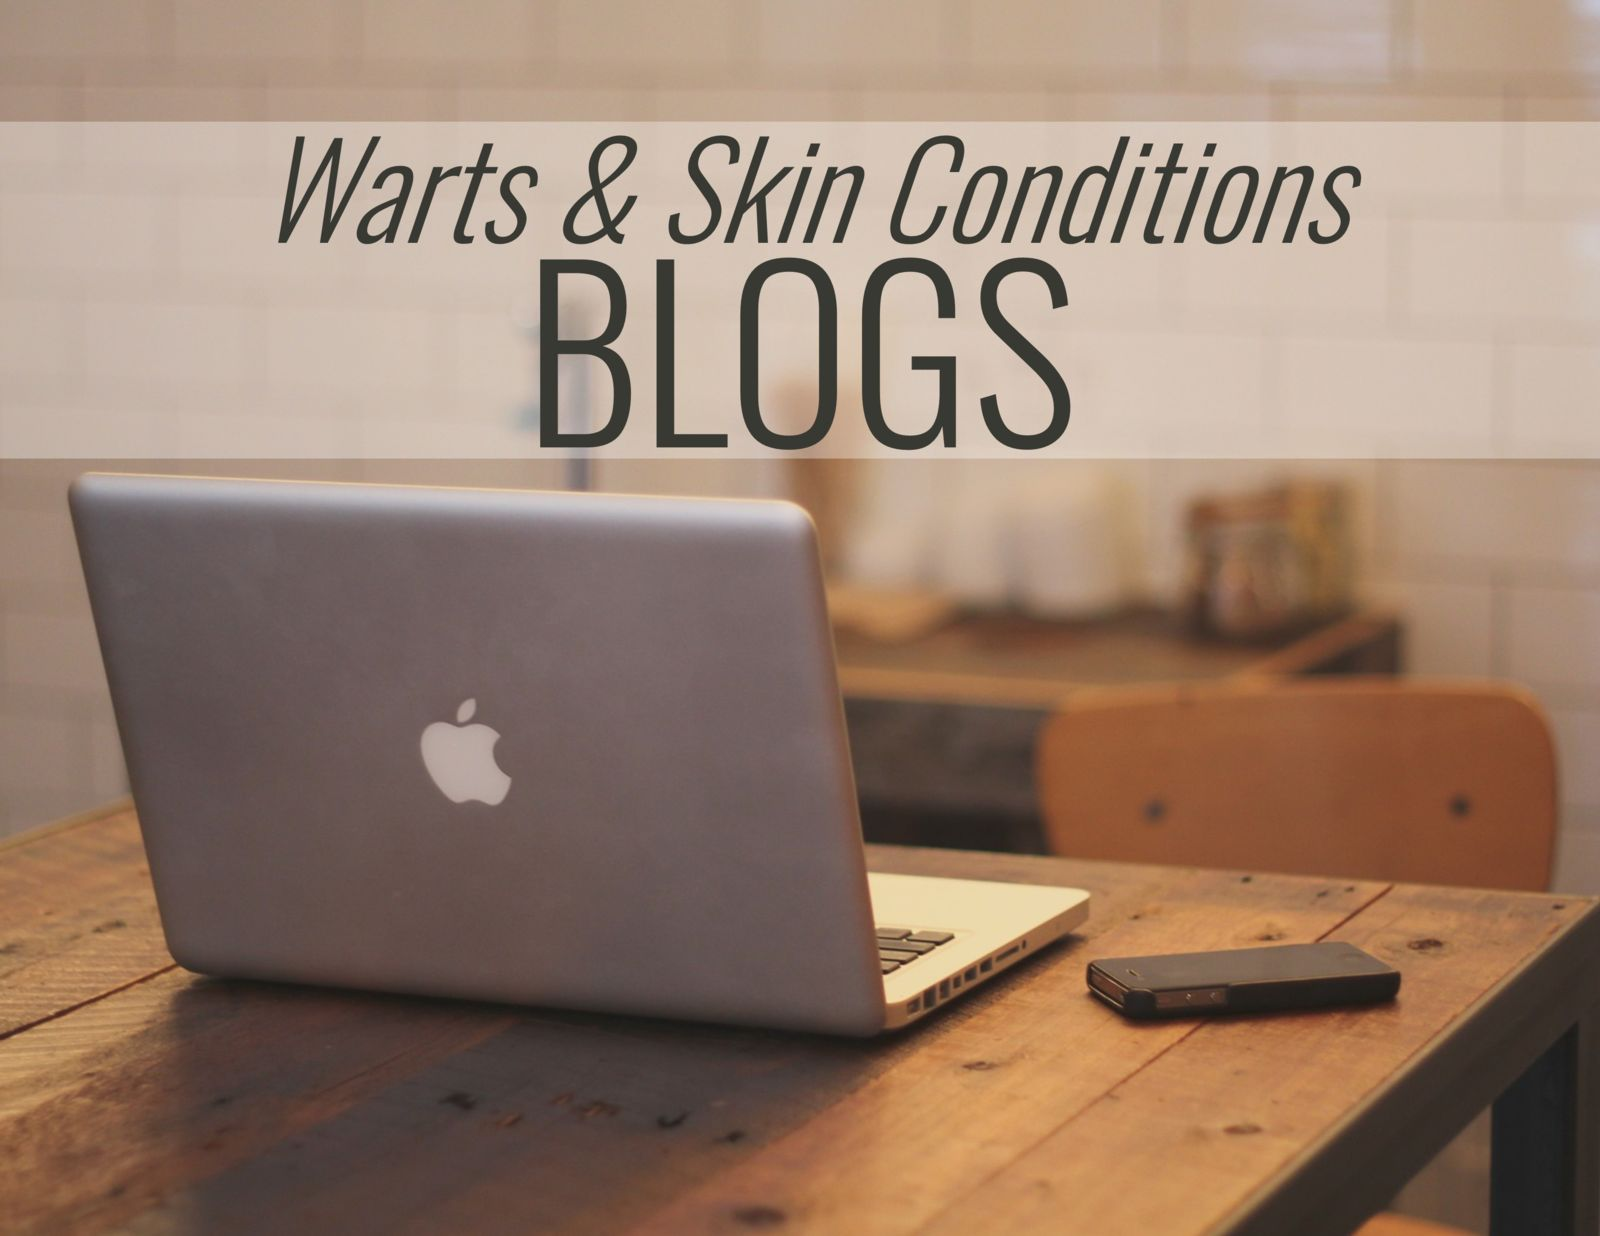 computer on a desk and the words: Warts & Skin Conditions BLOG